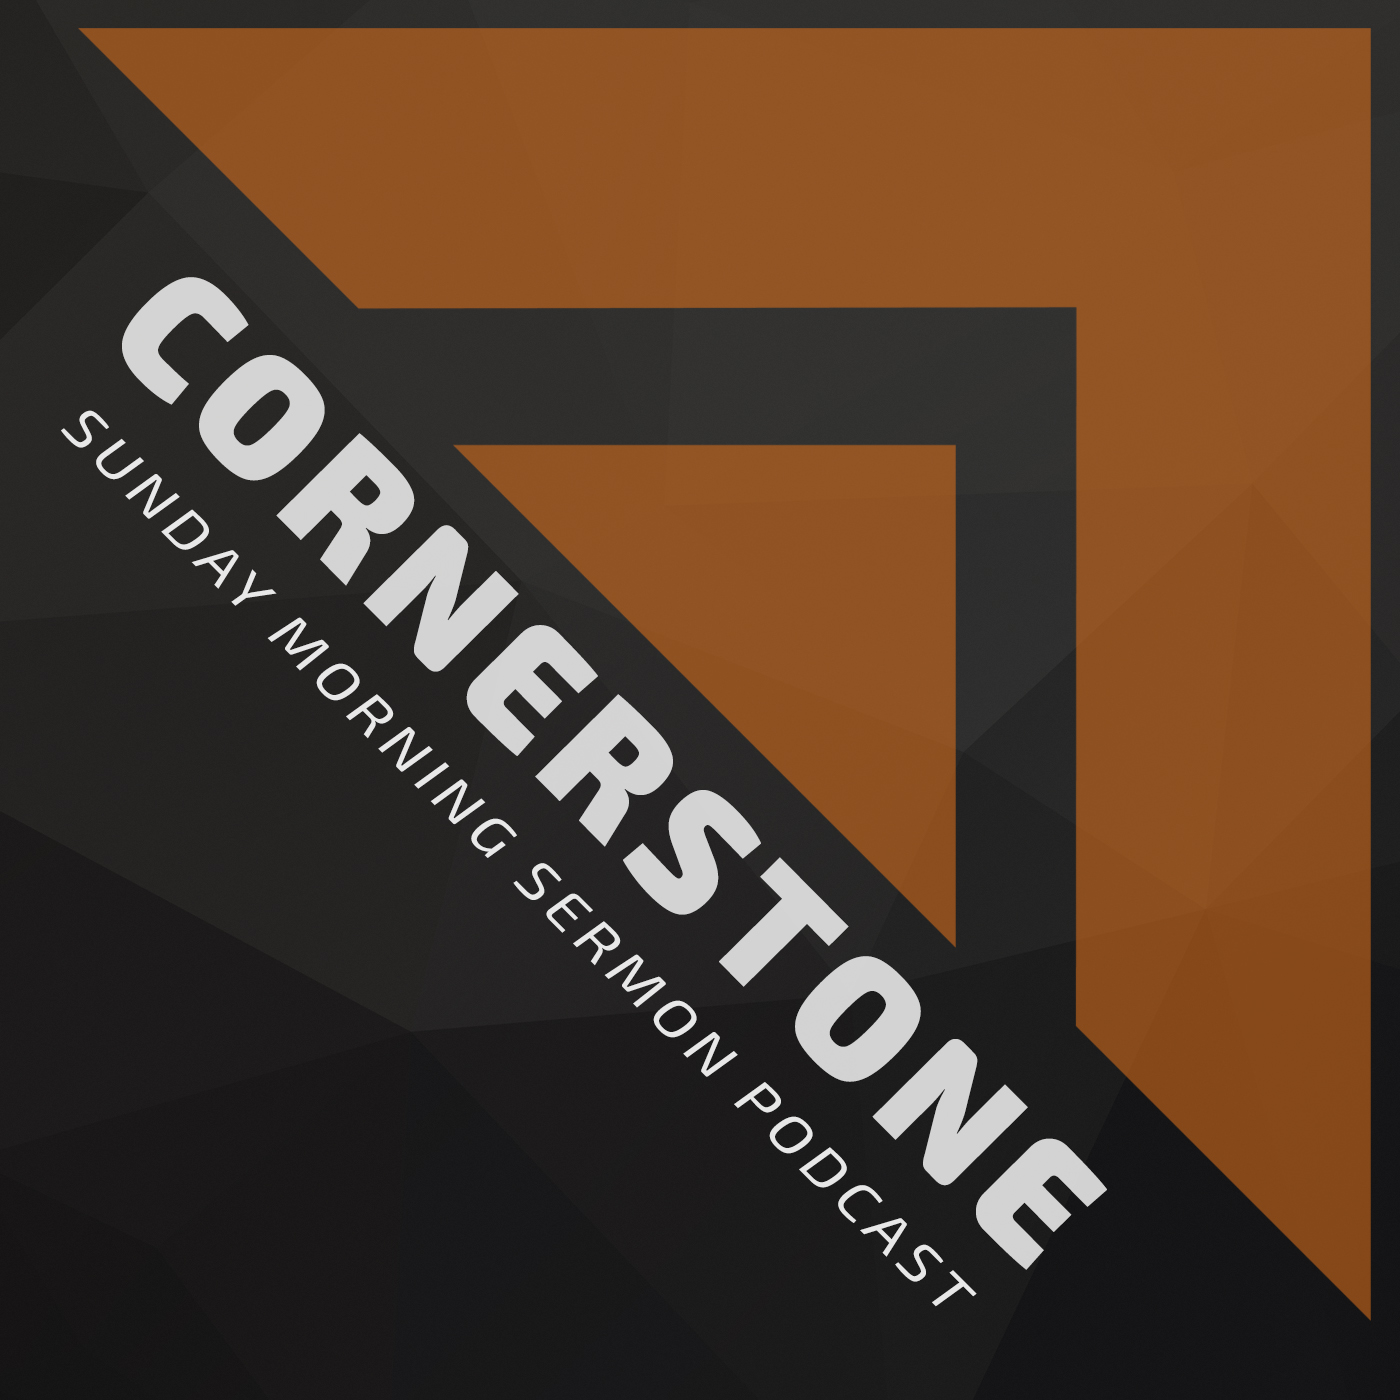 Cornerstone Church, S.C.